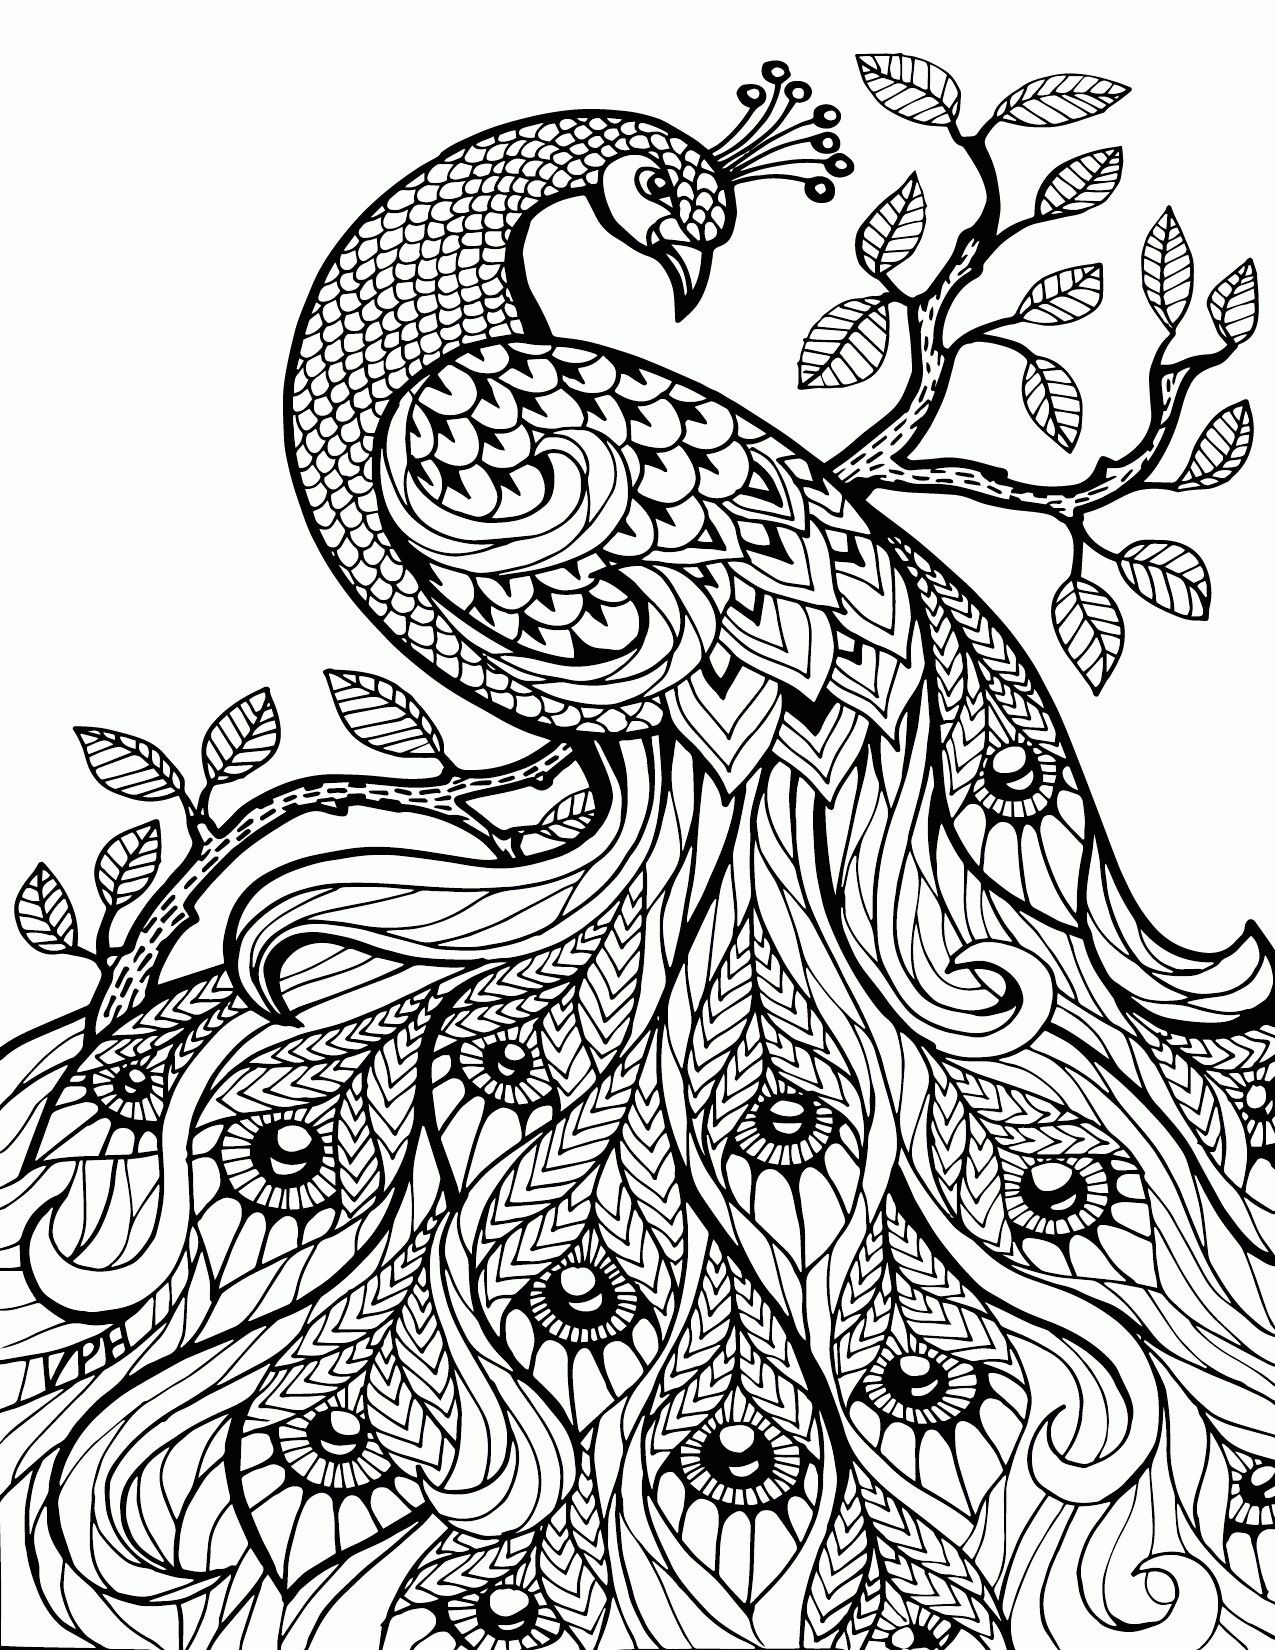 Pin by Stormy Enchantment on peacock Pinterest Adult coloring